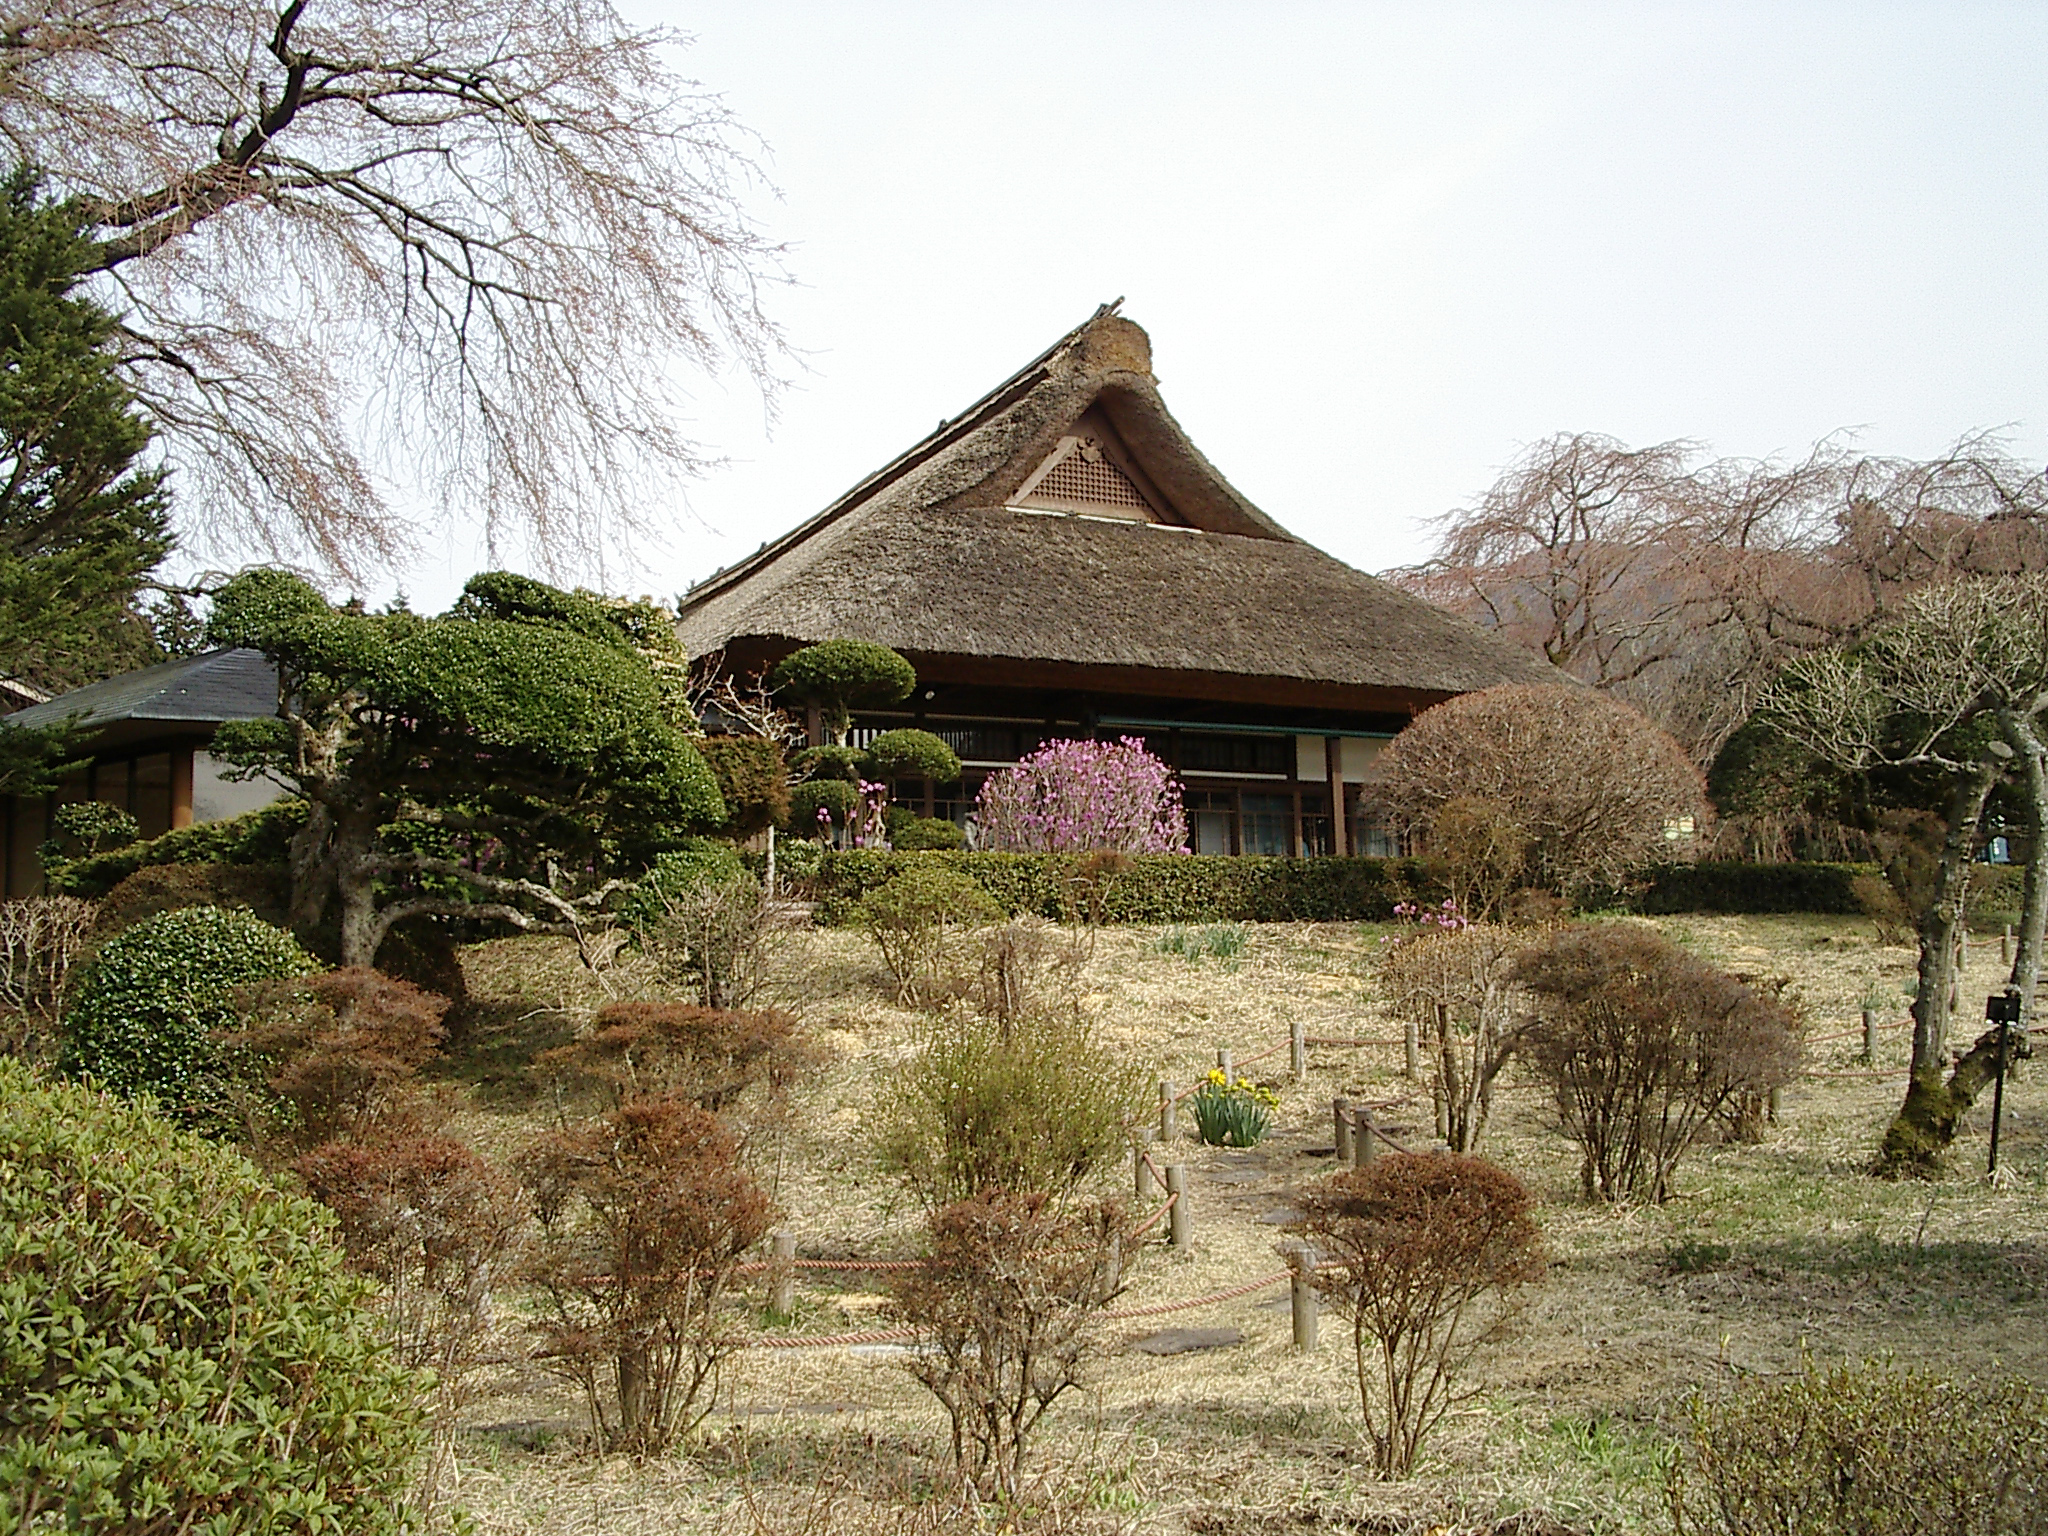 http://upload.wikimedia.org/wikipedia/commons/3/3a/Country_house_of_chichibunomiya.jpg